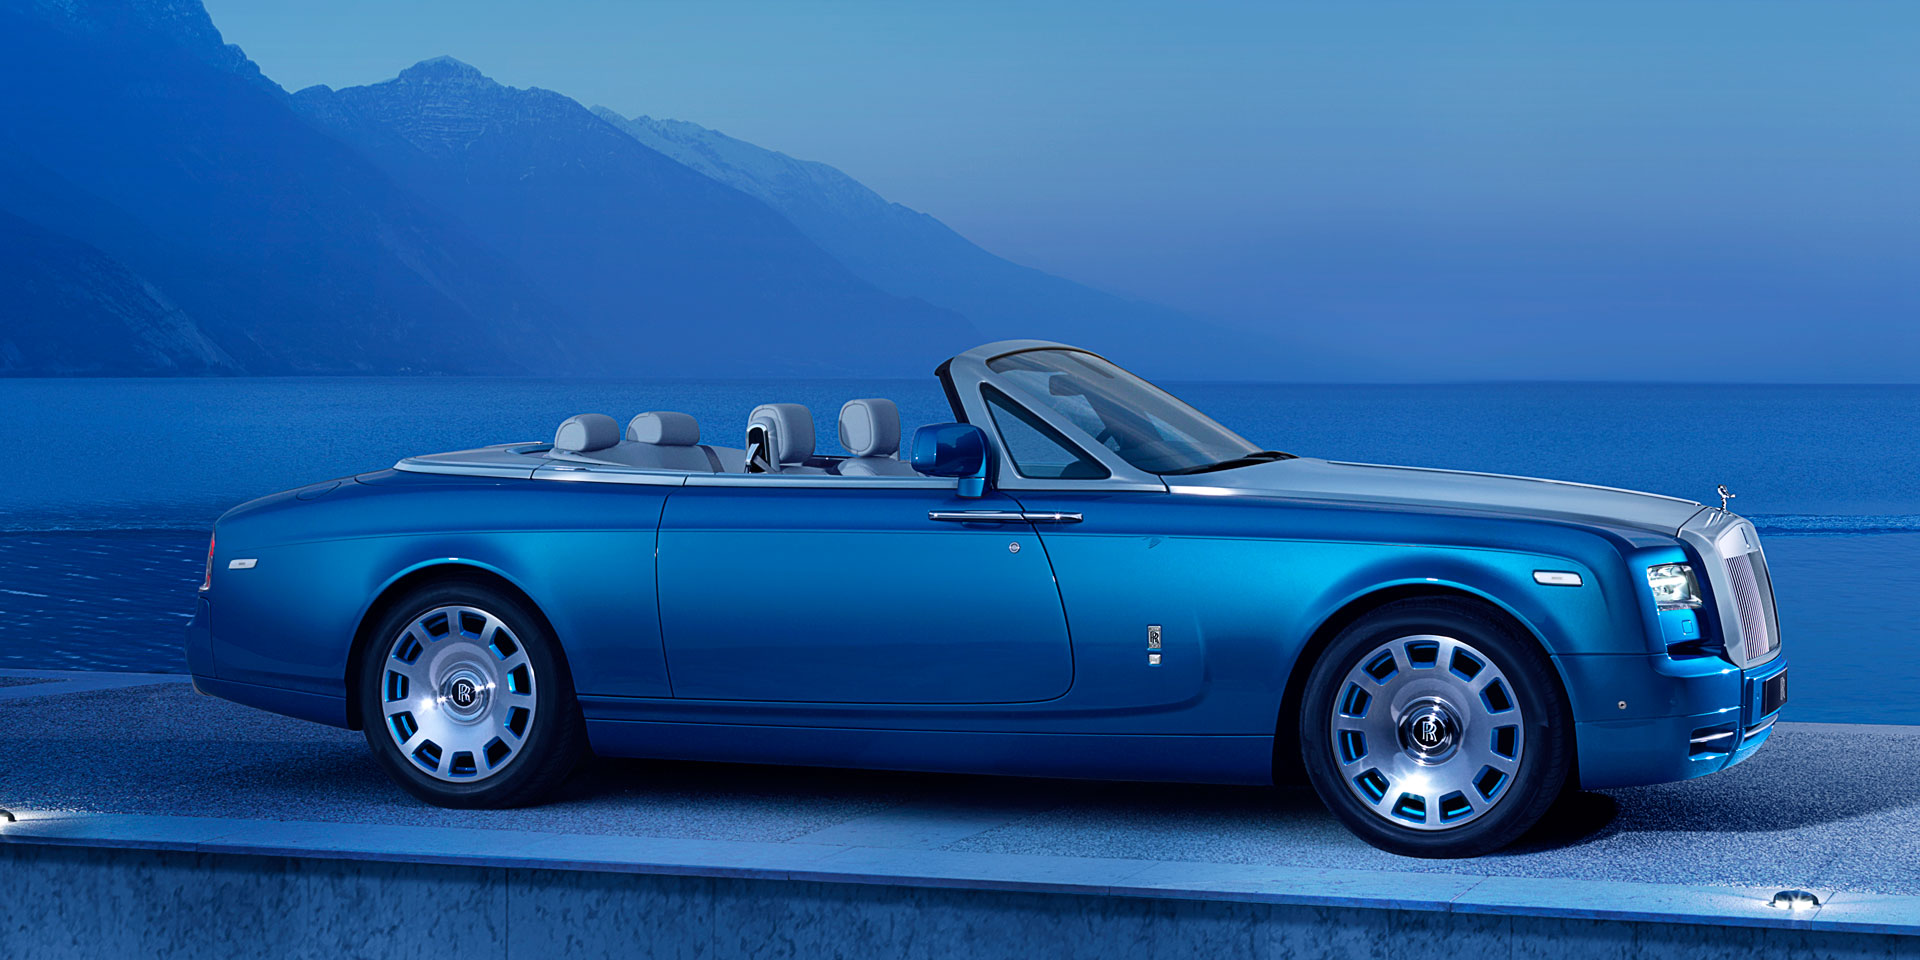 2018 Rolls Royce Phantom Drophead Coupe Vehicles On